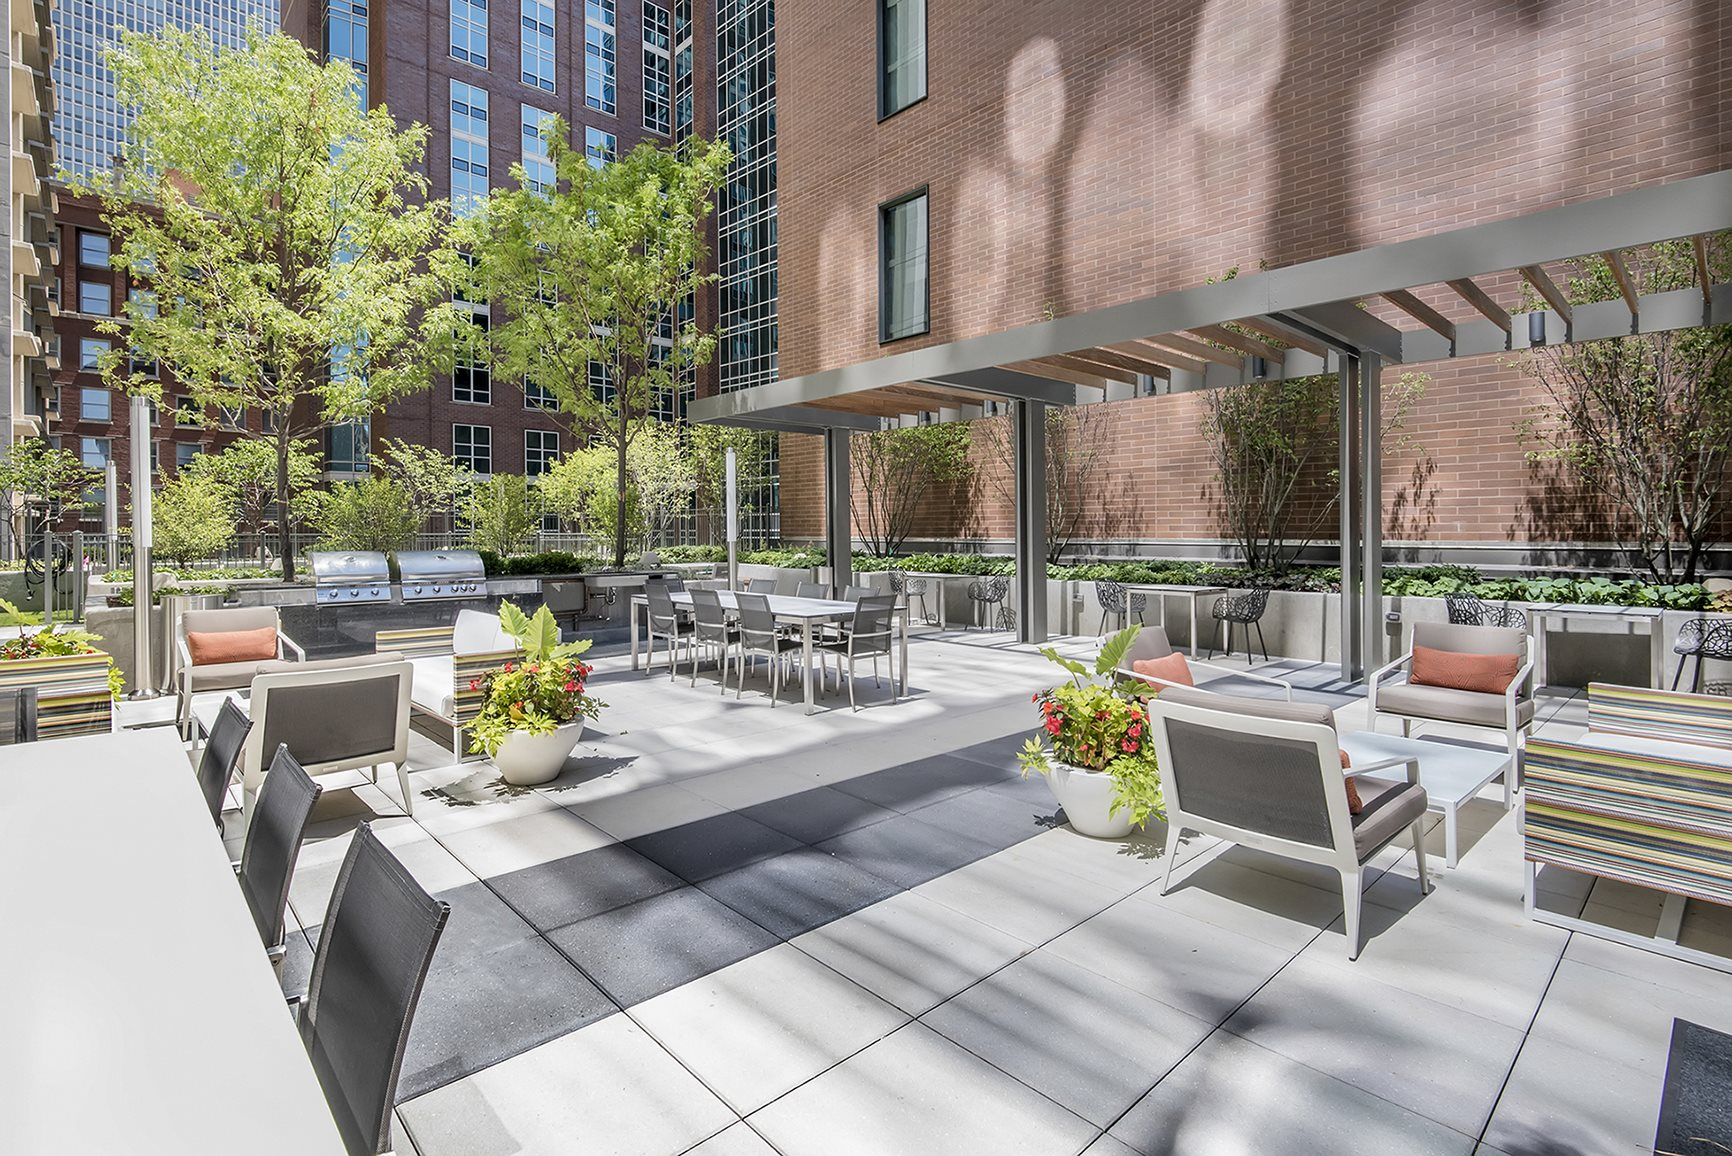 Rooftop Terrace with Seating and Landscaping at State and Chestnut Apartments, Chicago, IL